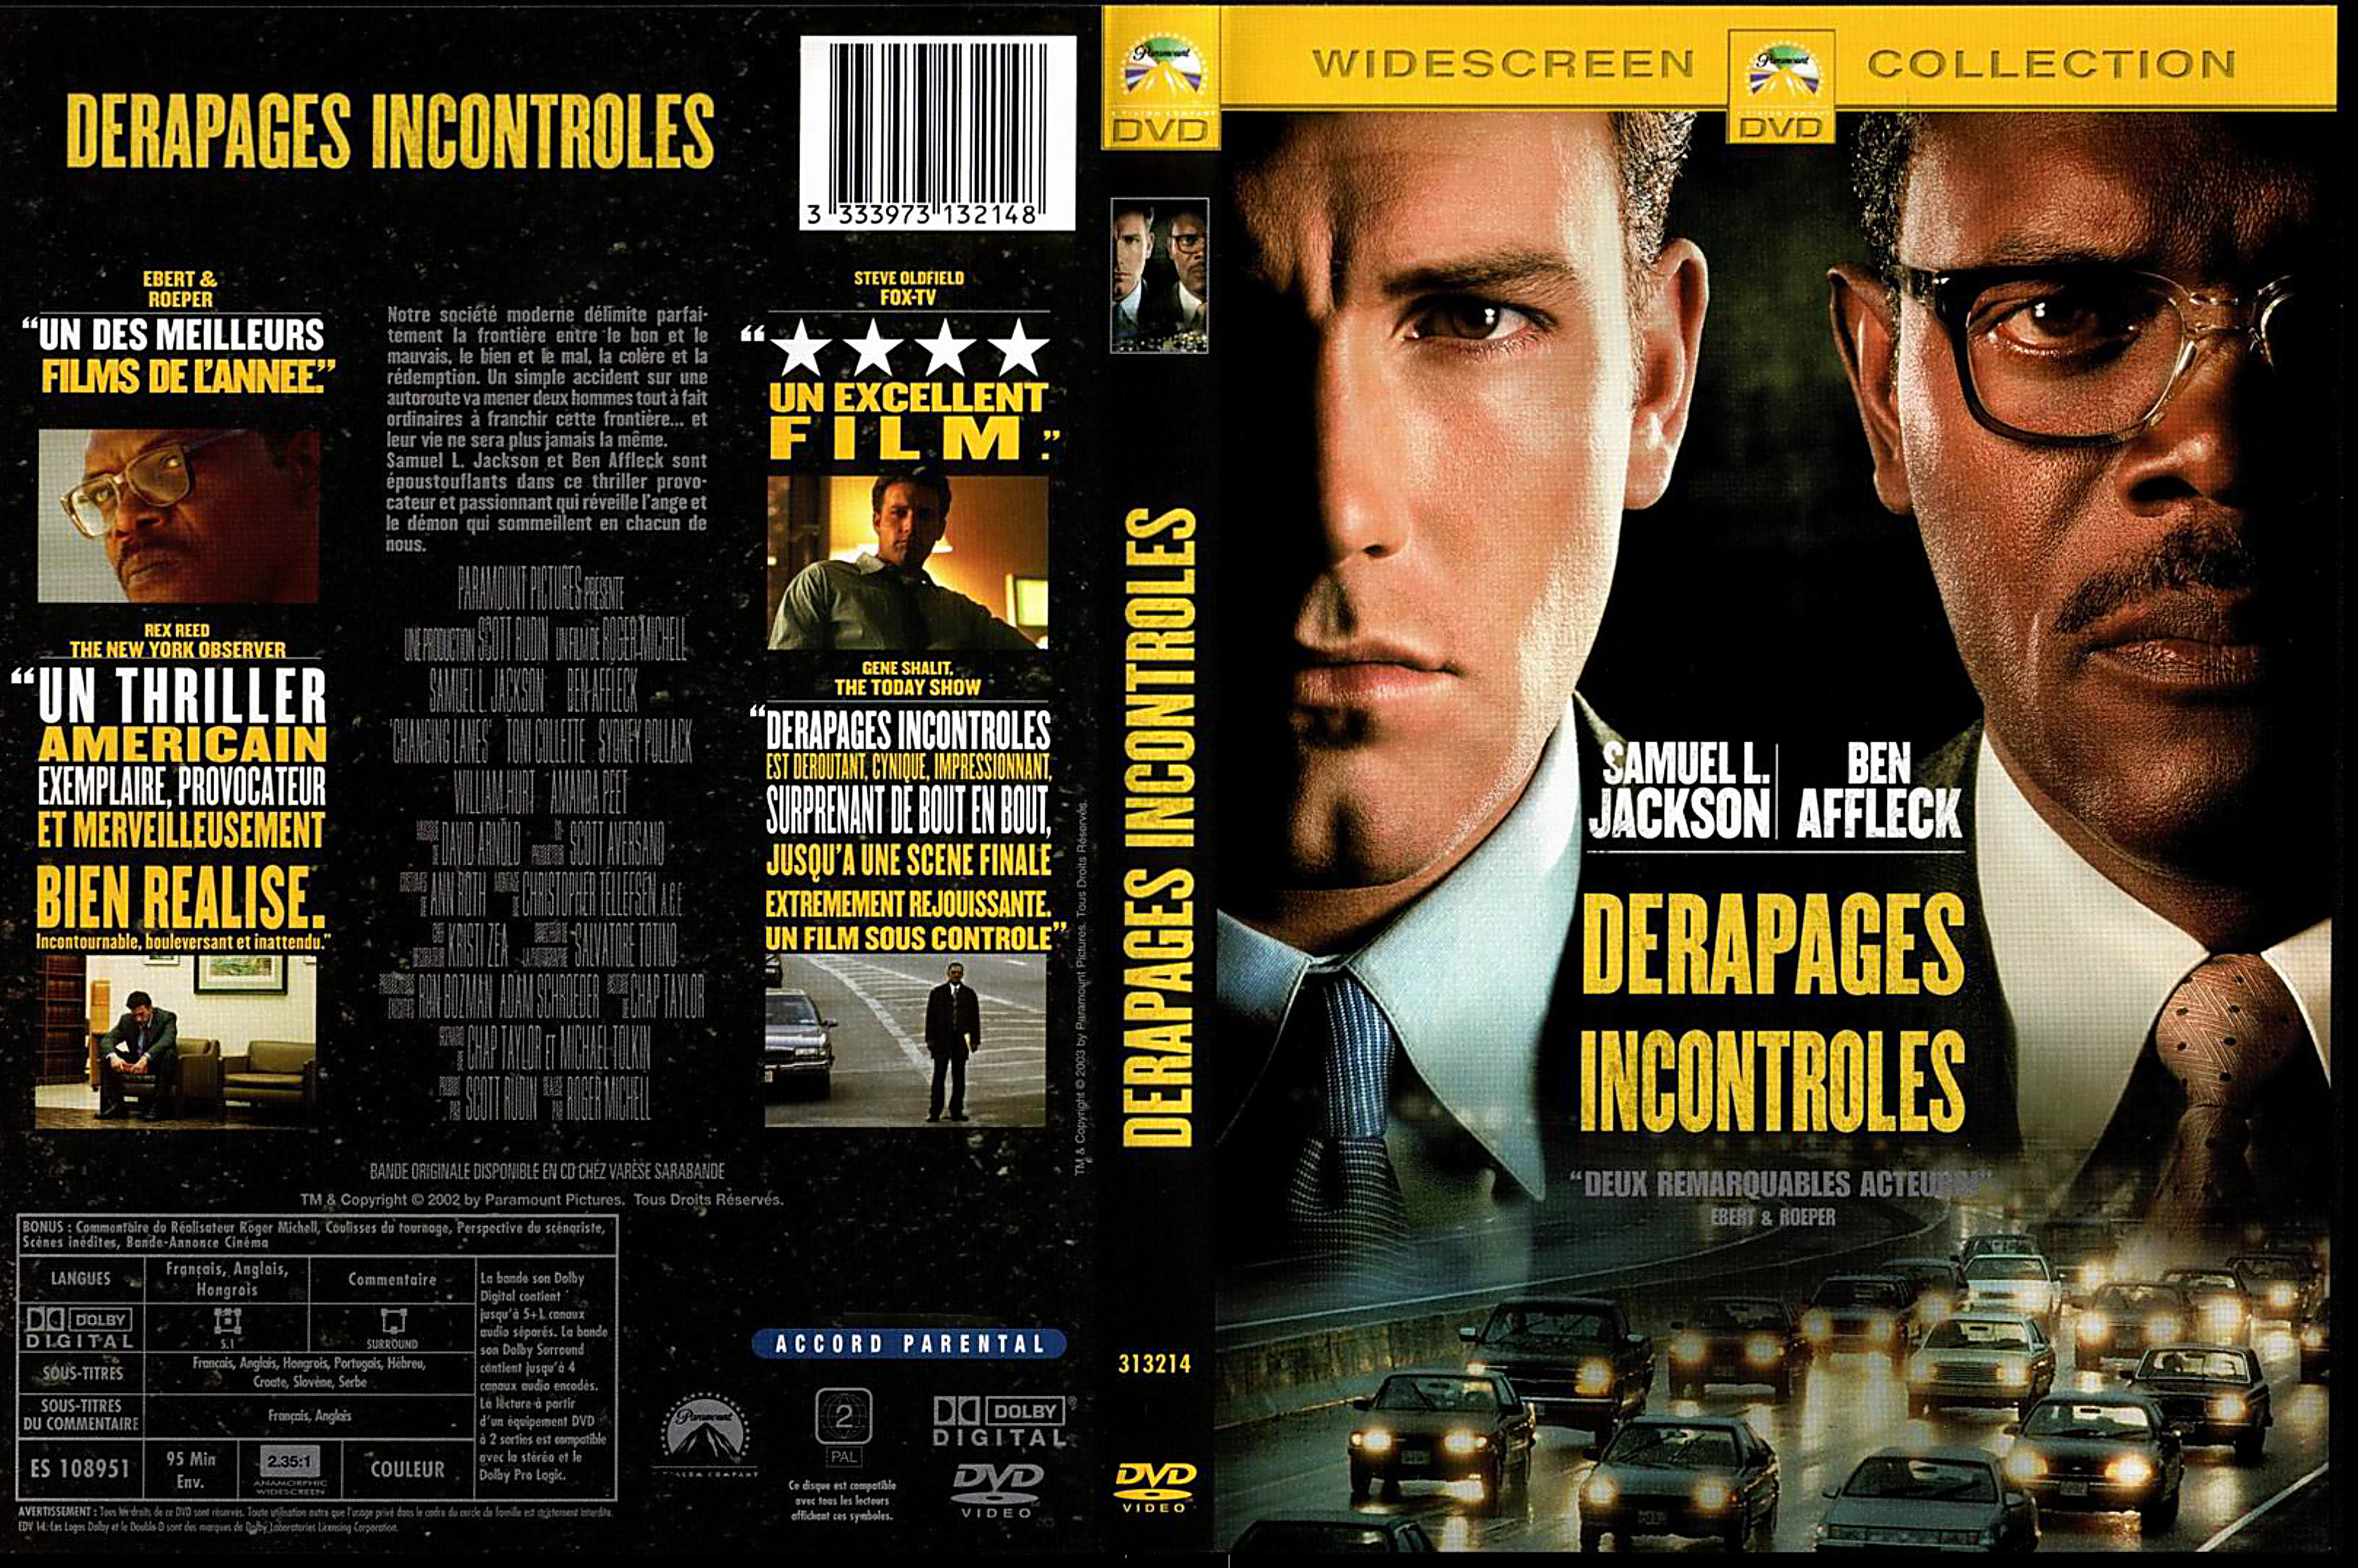 Derapages Incontroles FRENCH DVDRiP By Chucky [Tino2008 ] preview 0